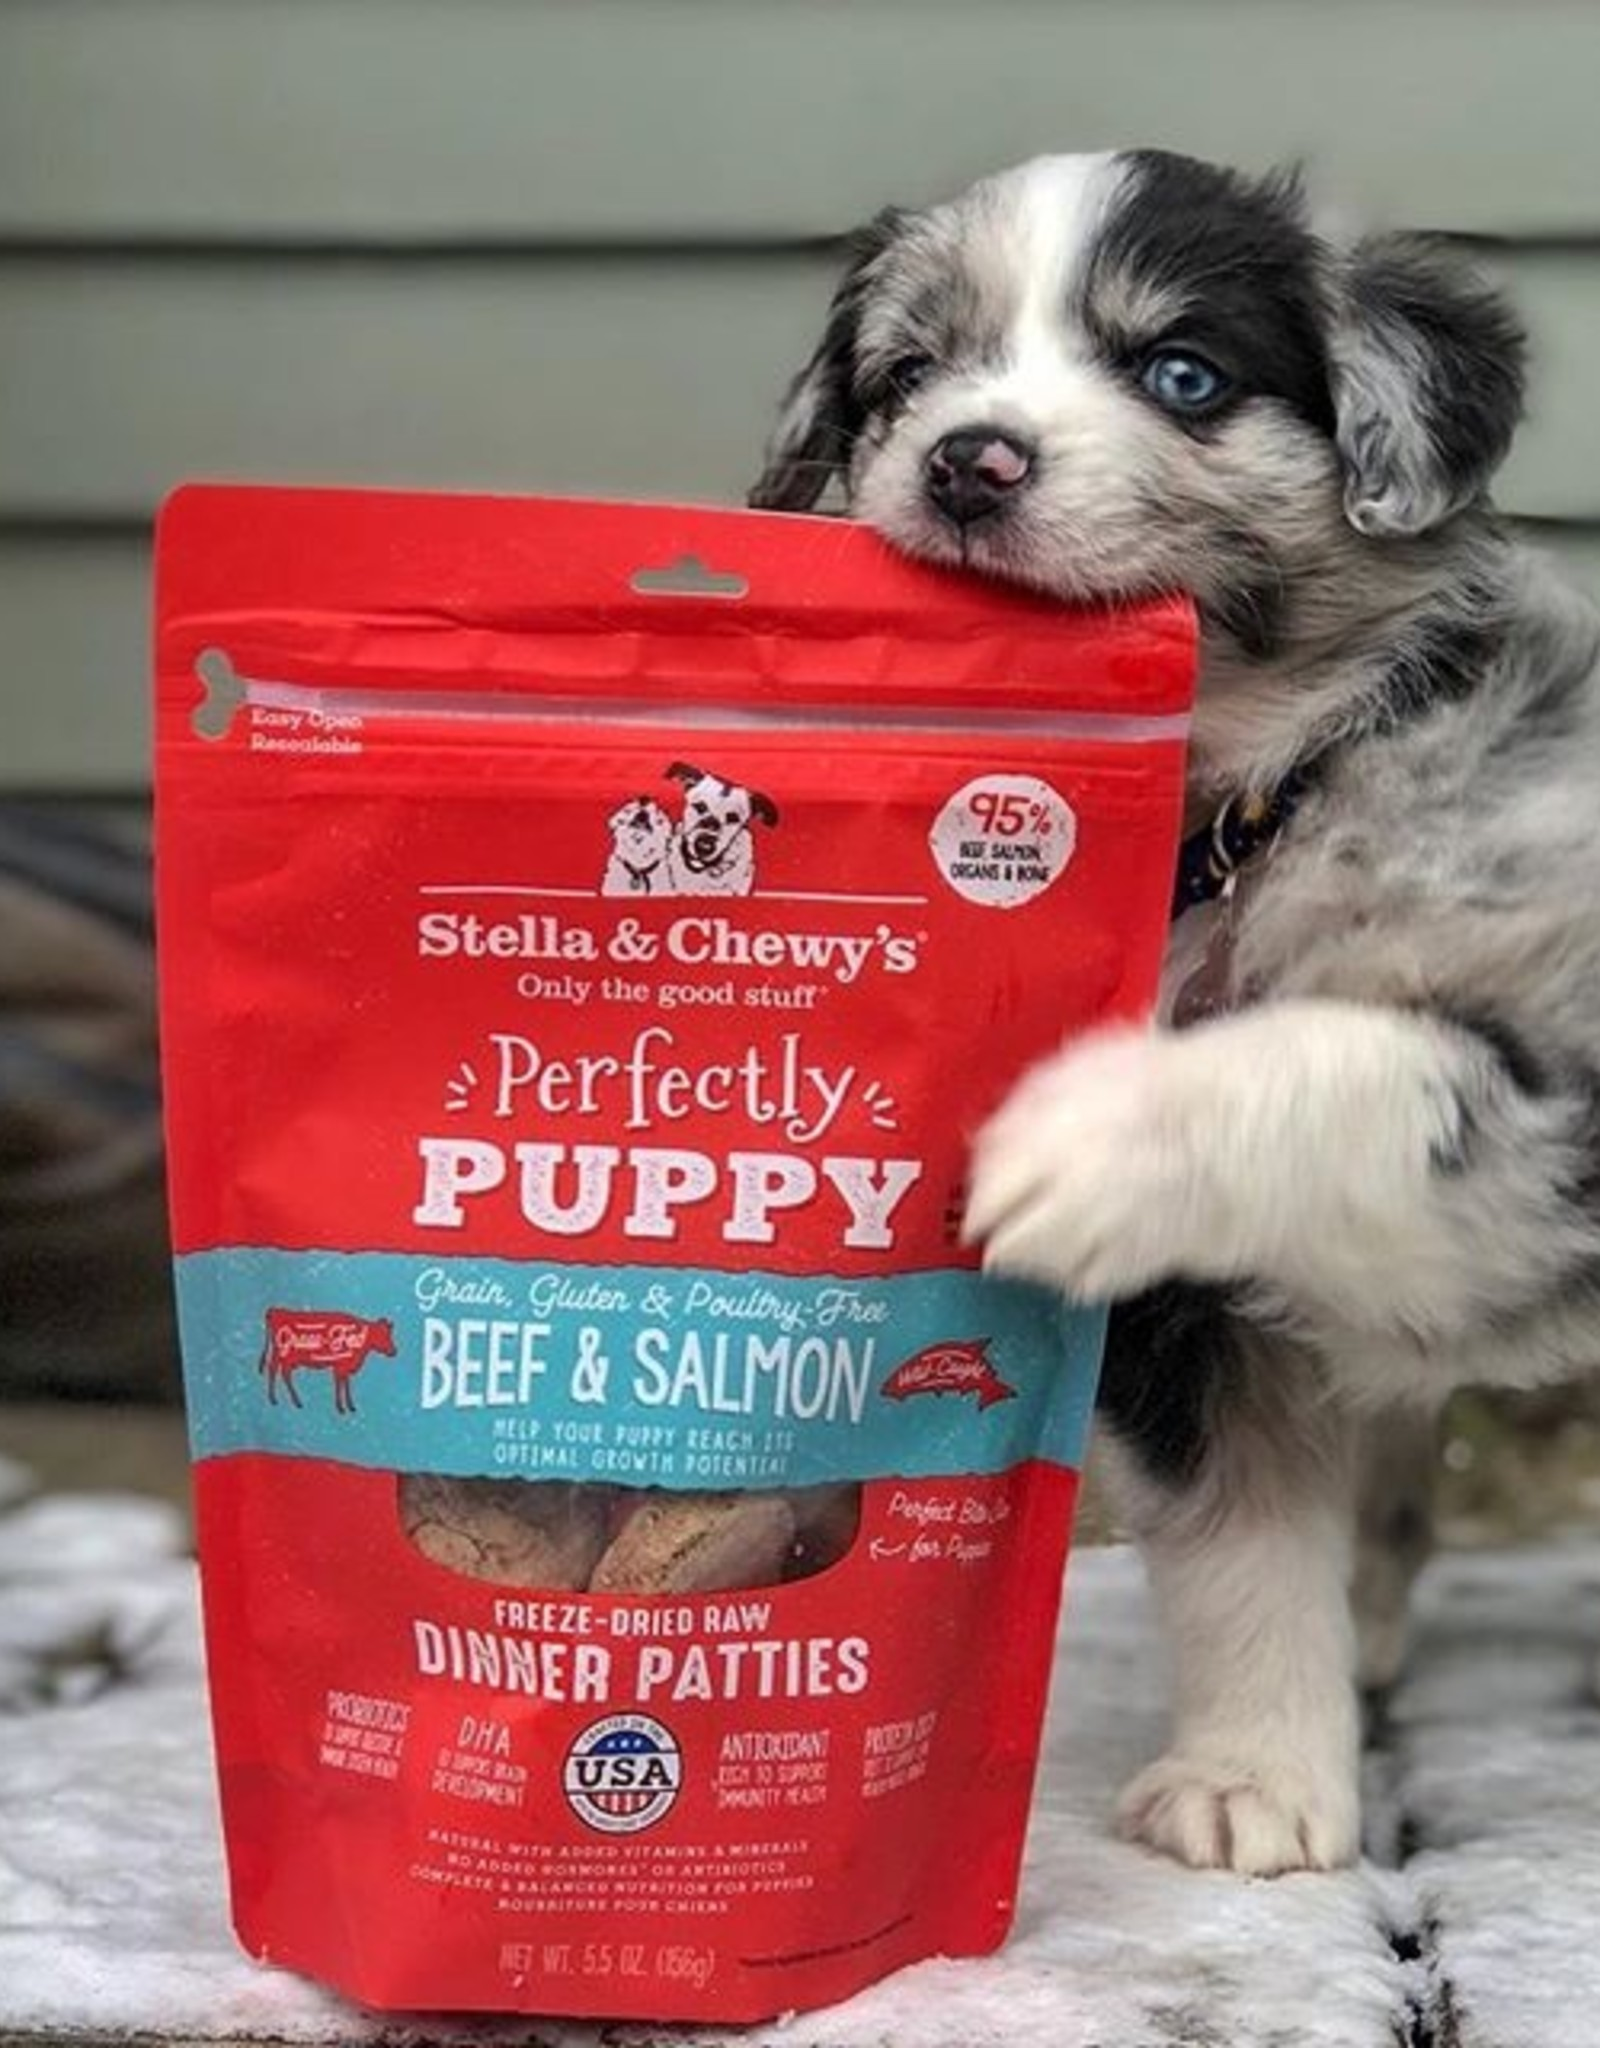 STELLA & CHEWY'S Stella & Chewy's | Perfectly Puppy Beef & Salmon Dinner Patties 14 oz